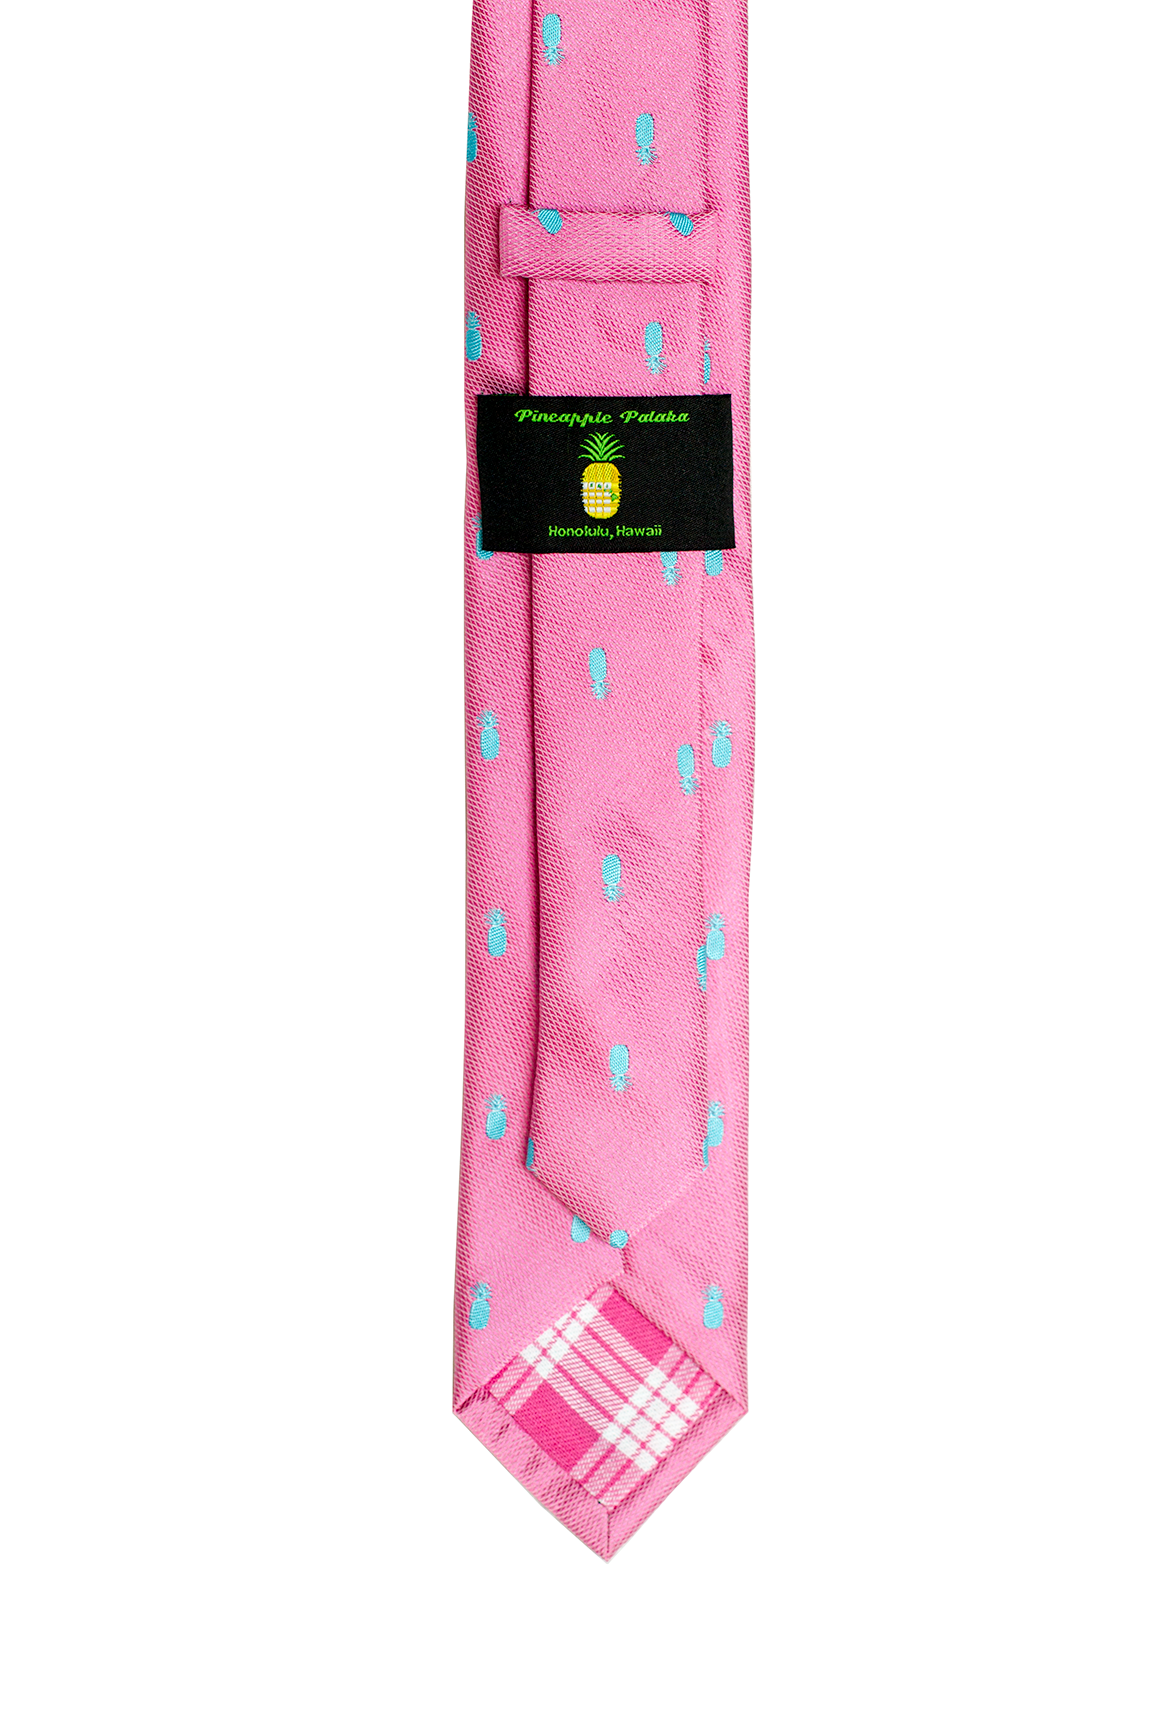 Pineapple Vice Pink/Teal Slim Necktie